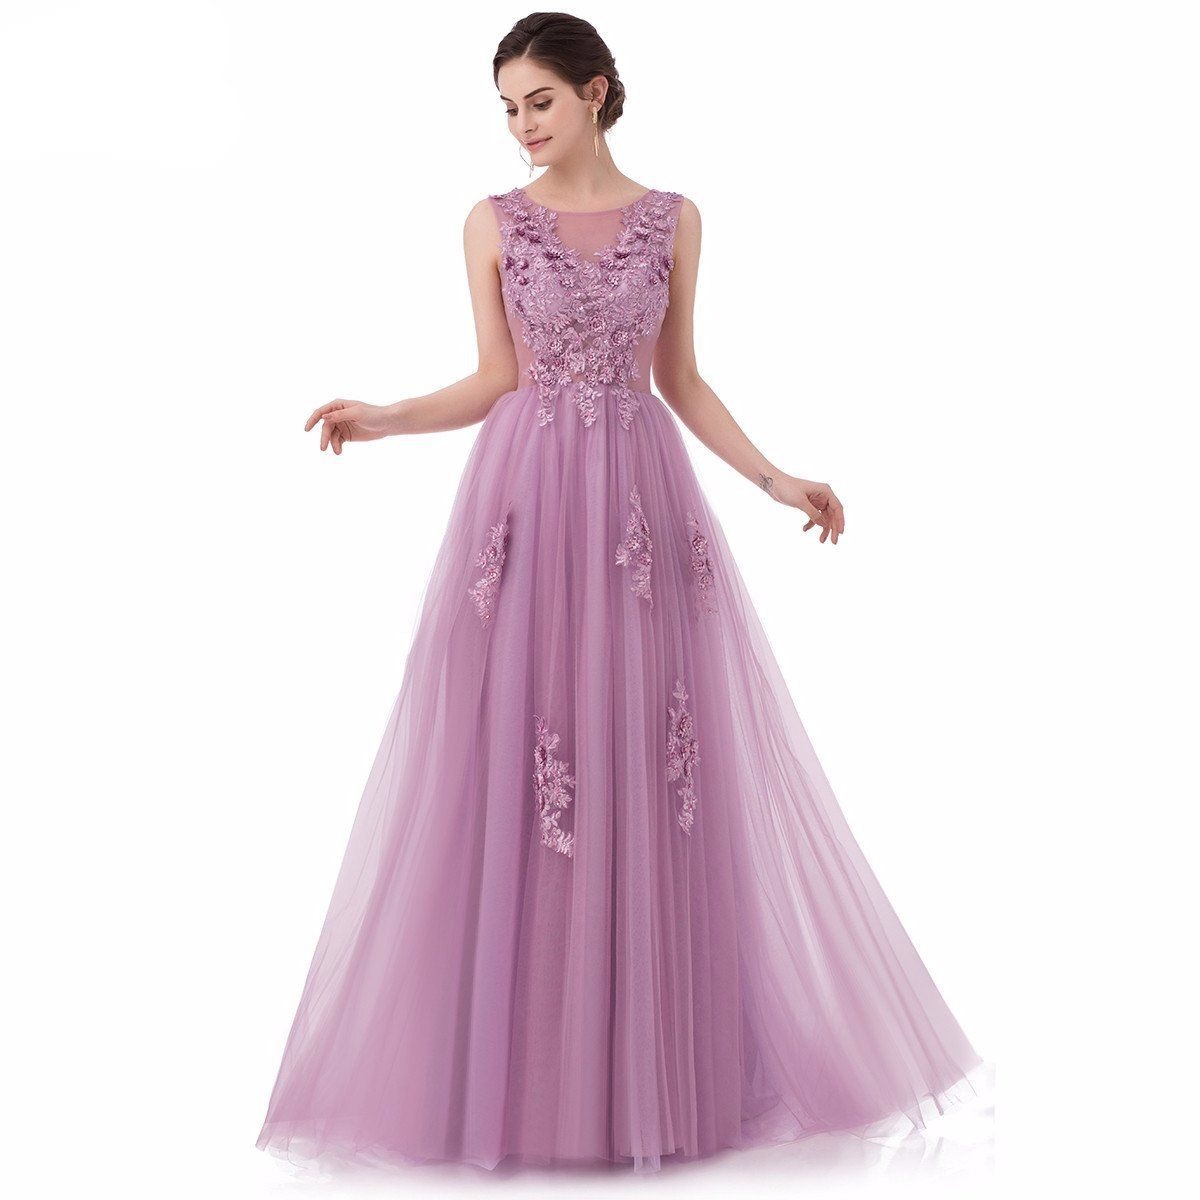 Lace Appliques with Beading Sleeveless Floor-length Long Party Gowns ... a6153a082146